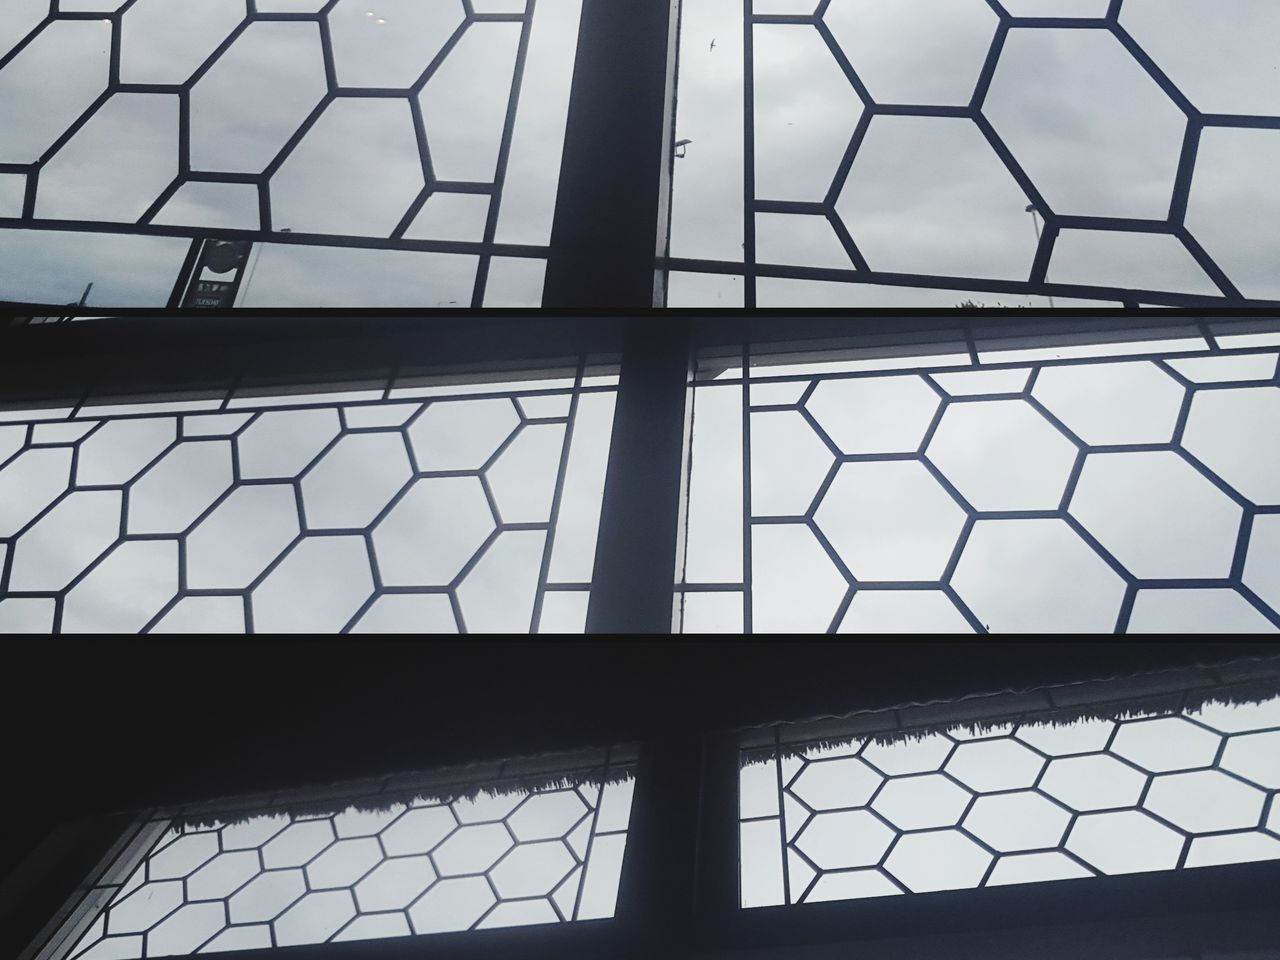 Windows Pattern Hexagon Hexagons Hexagonstyle Shapes Shapes And Forms No People Shapes Re-shaped